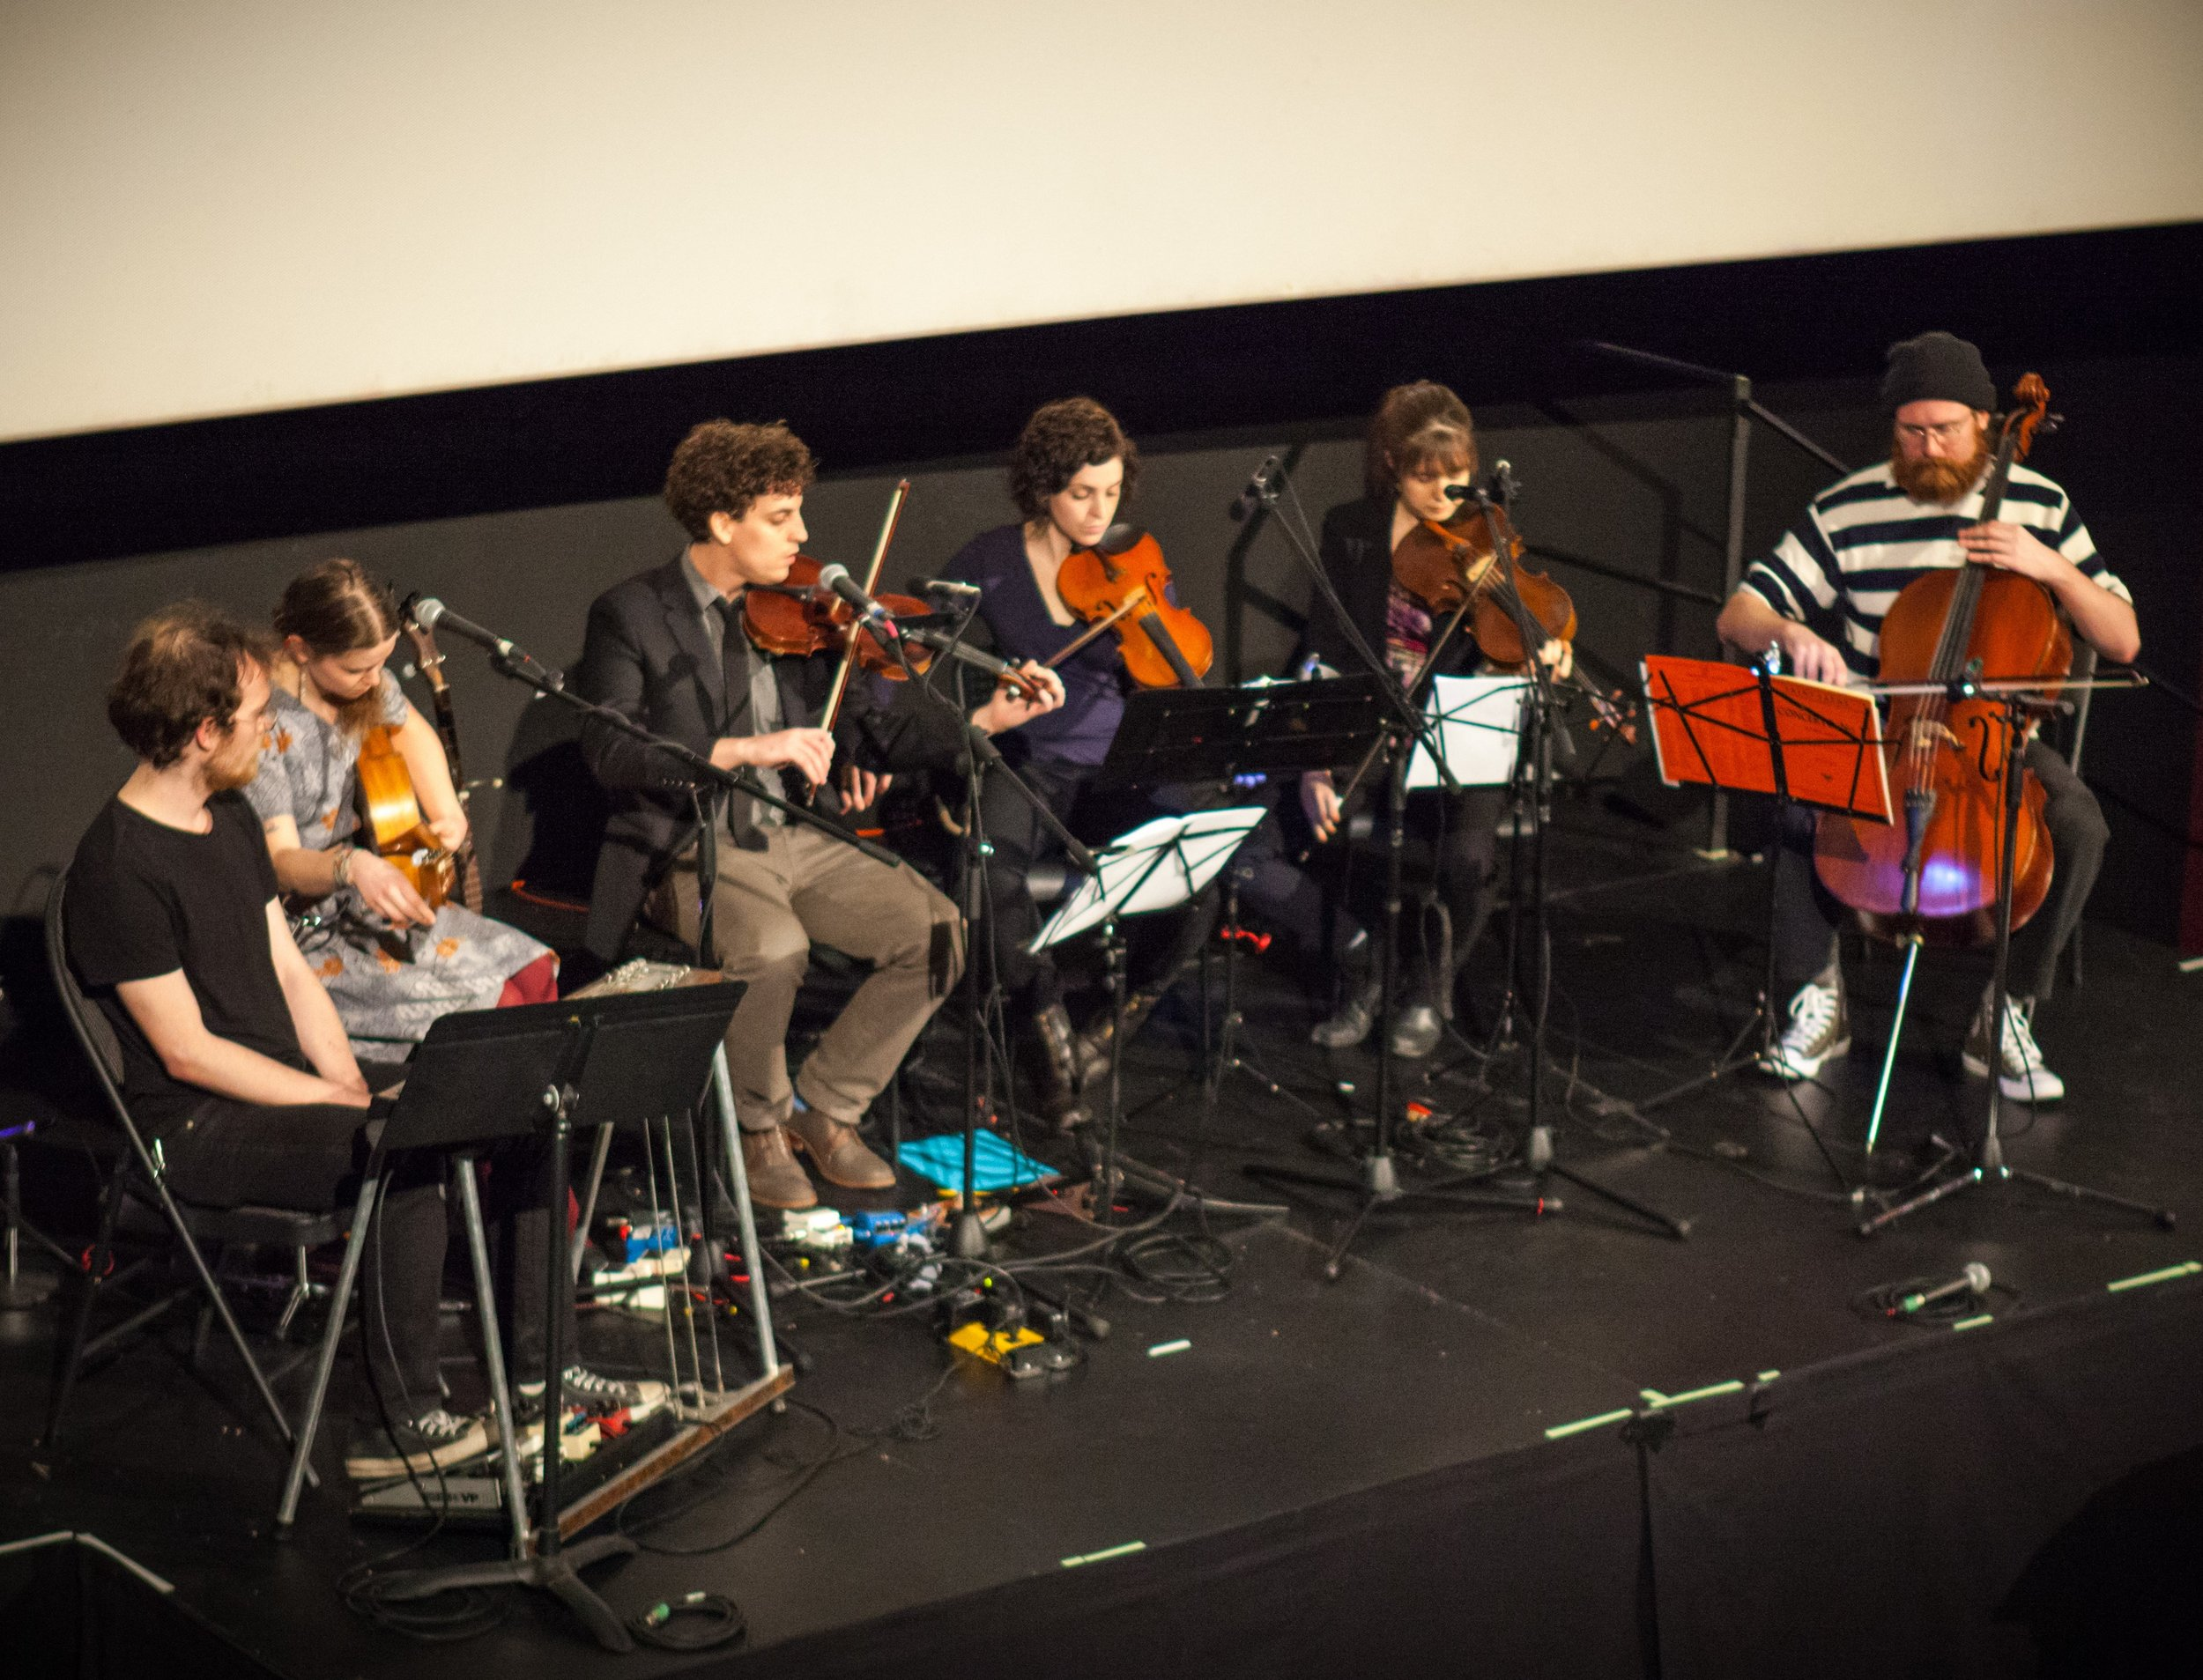 Musicians playing pieces composed by Anthony William Wallace while in the Yukon as a participant in    The Peel Project    ,  a film shown on Opening Night at the 2017 Water Docs Film Festival.